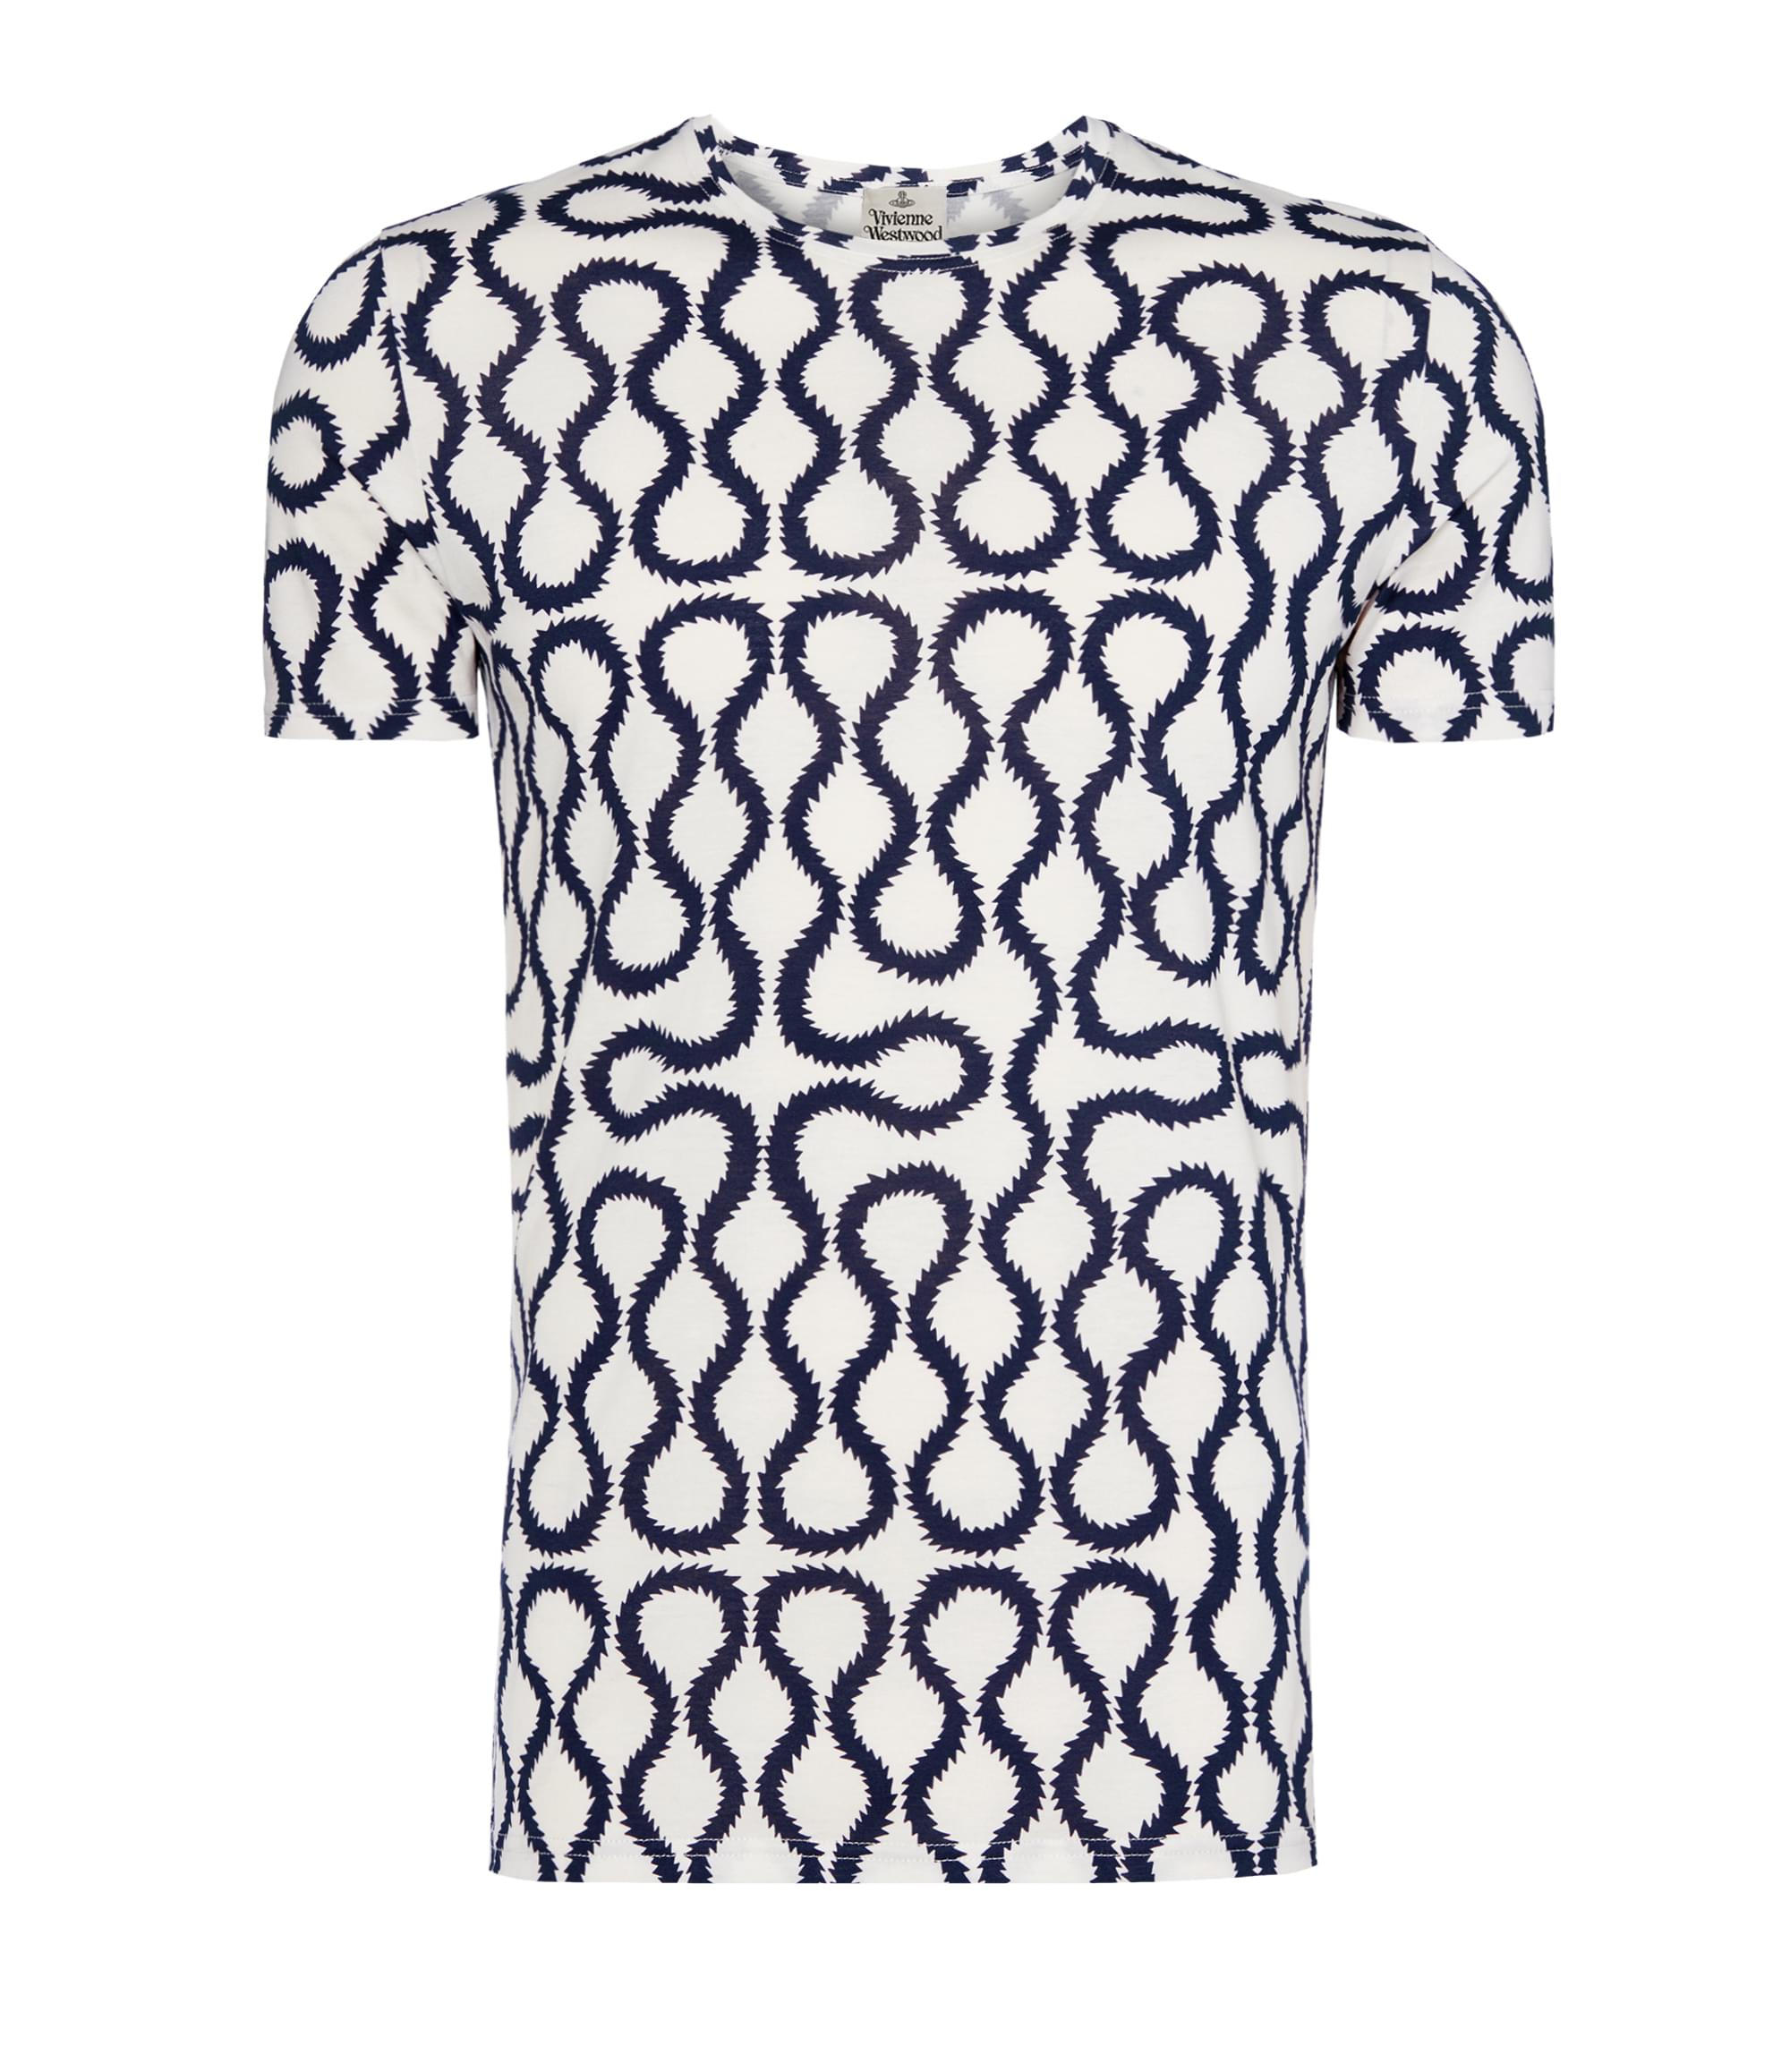 Vivienne Westwood Squiggle T-Shirt White\/Blue